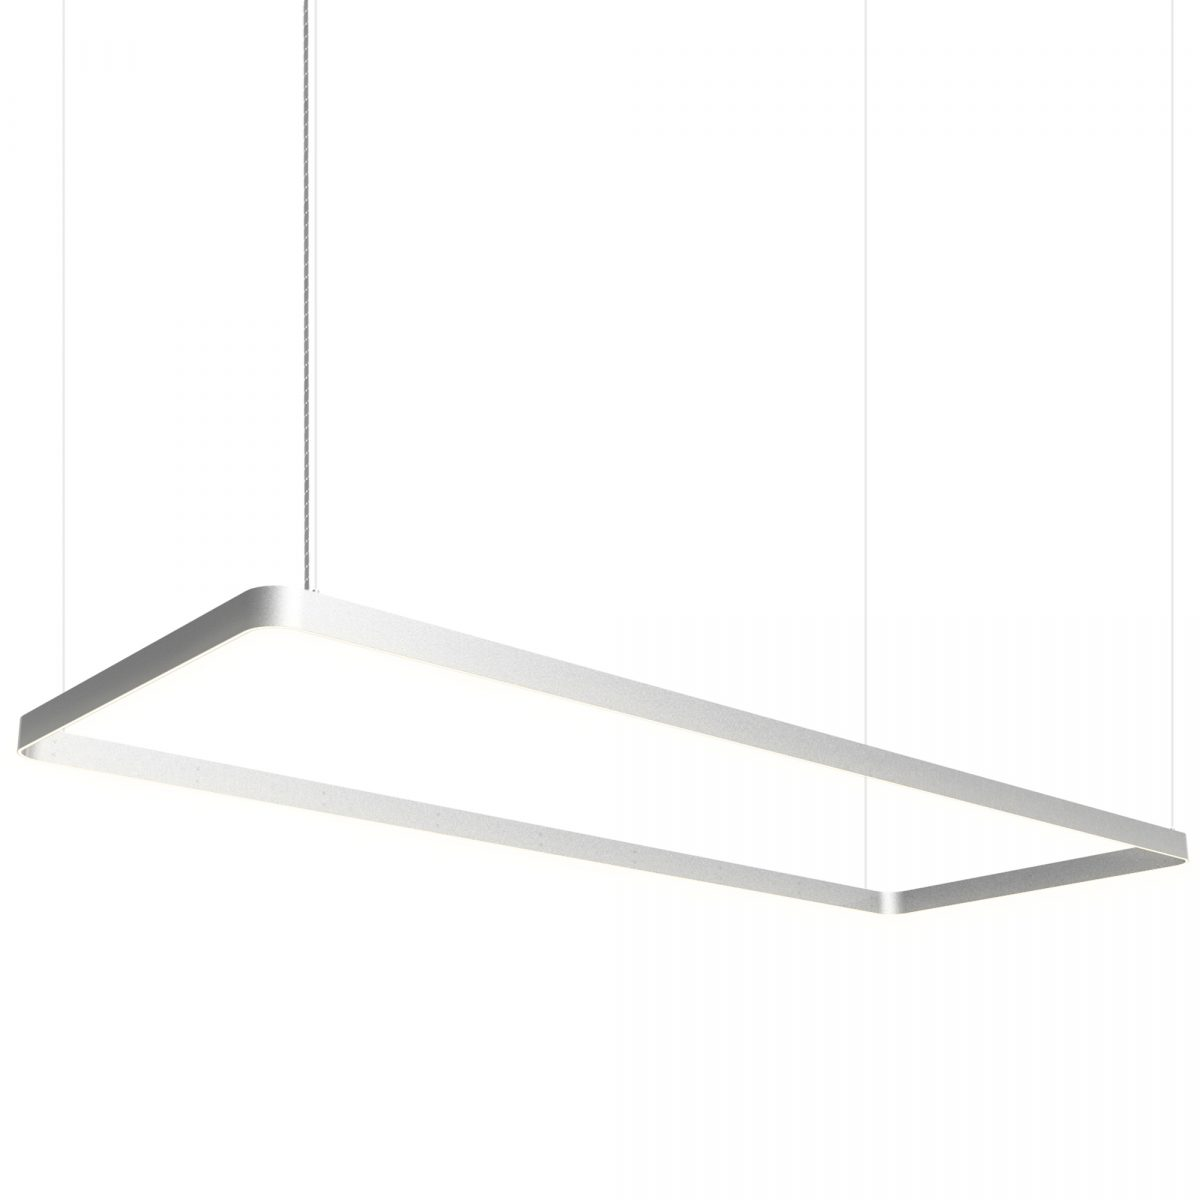 JSPR Eden 75×200 Silver Rectangle